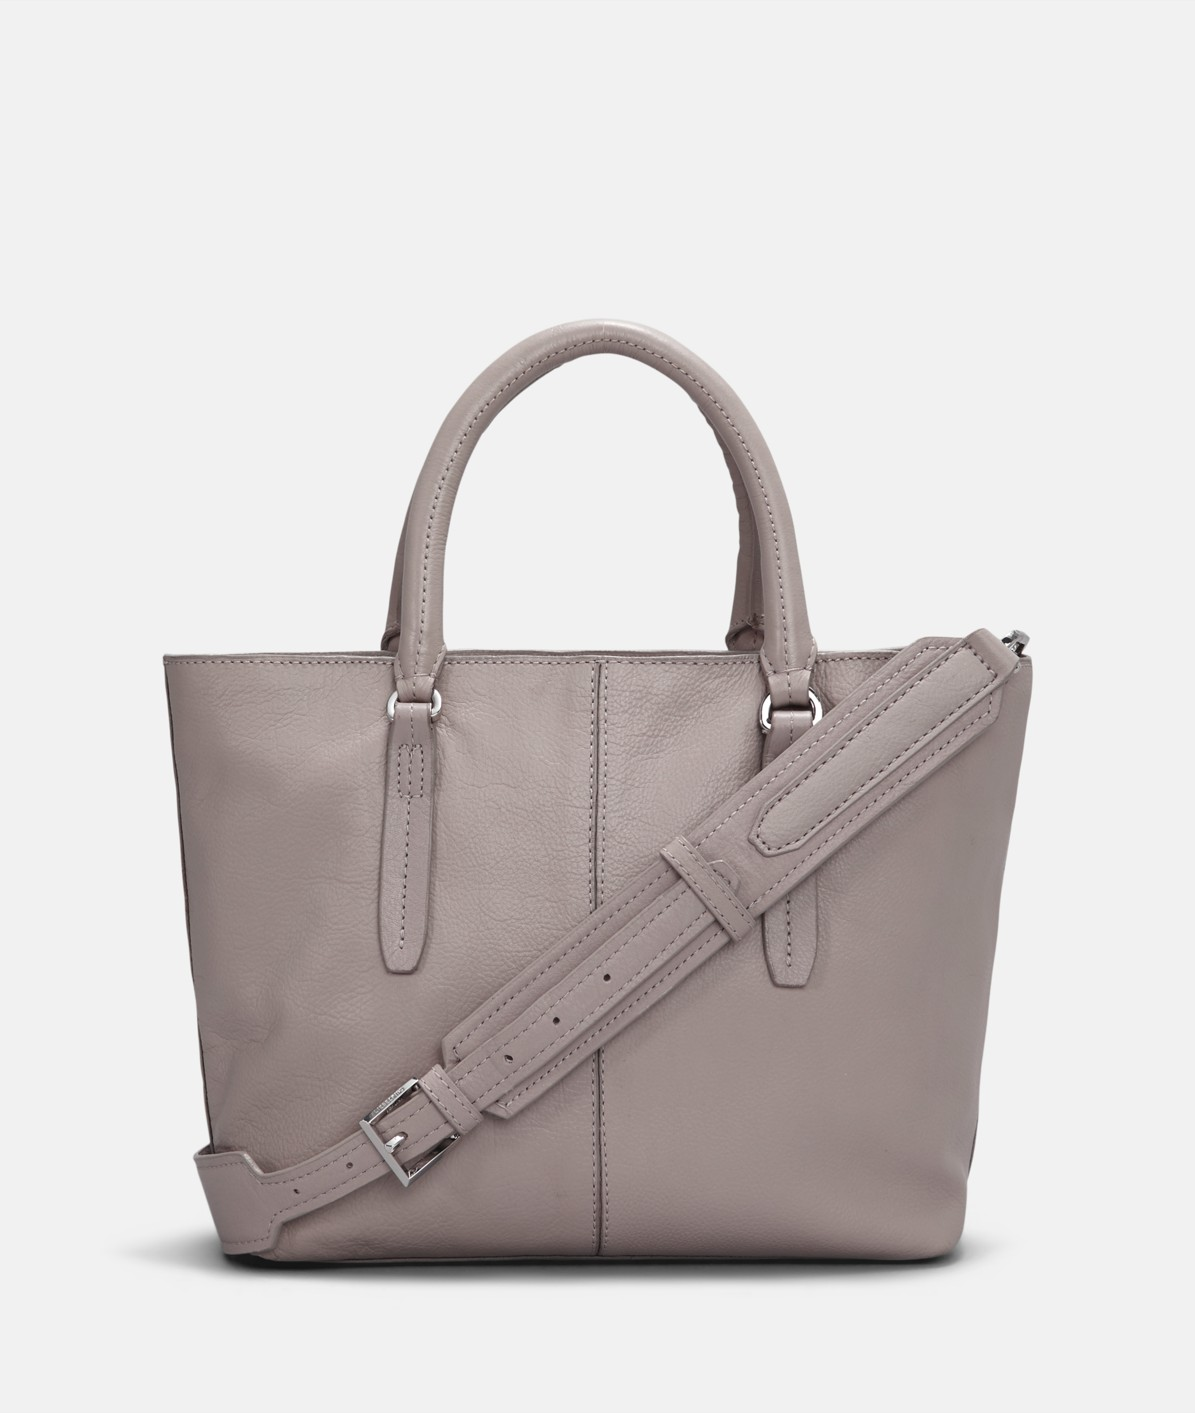 Soft leather satchel from liebeskind